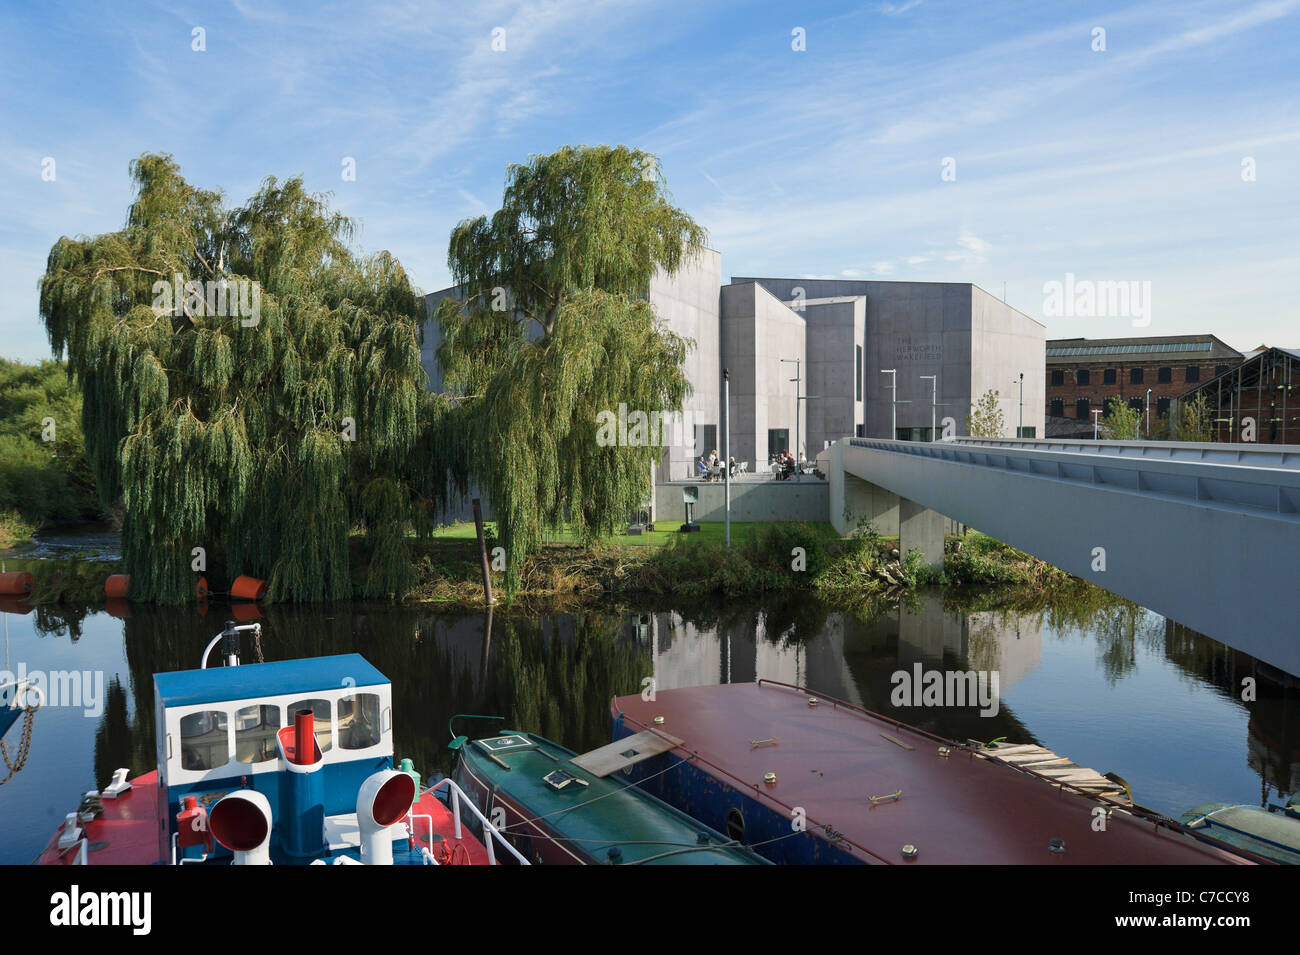 The Hepworth Wakefield art gallery viewed from across the River Calder, Wakefield, West Yorkshire, UK - Stock Image